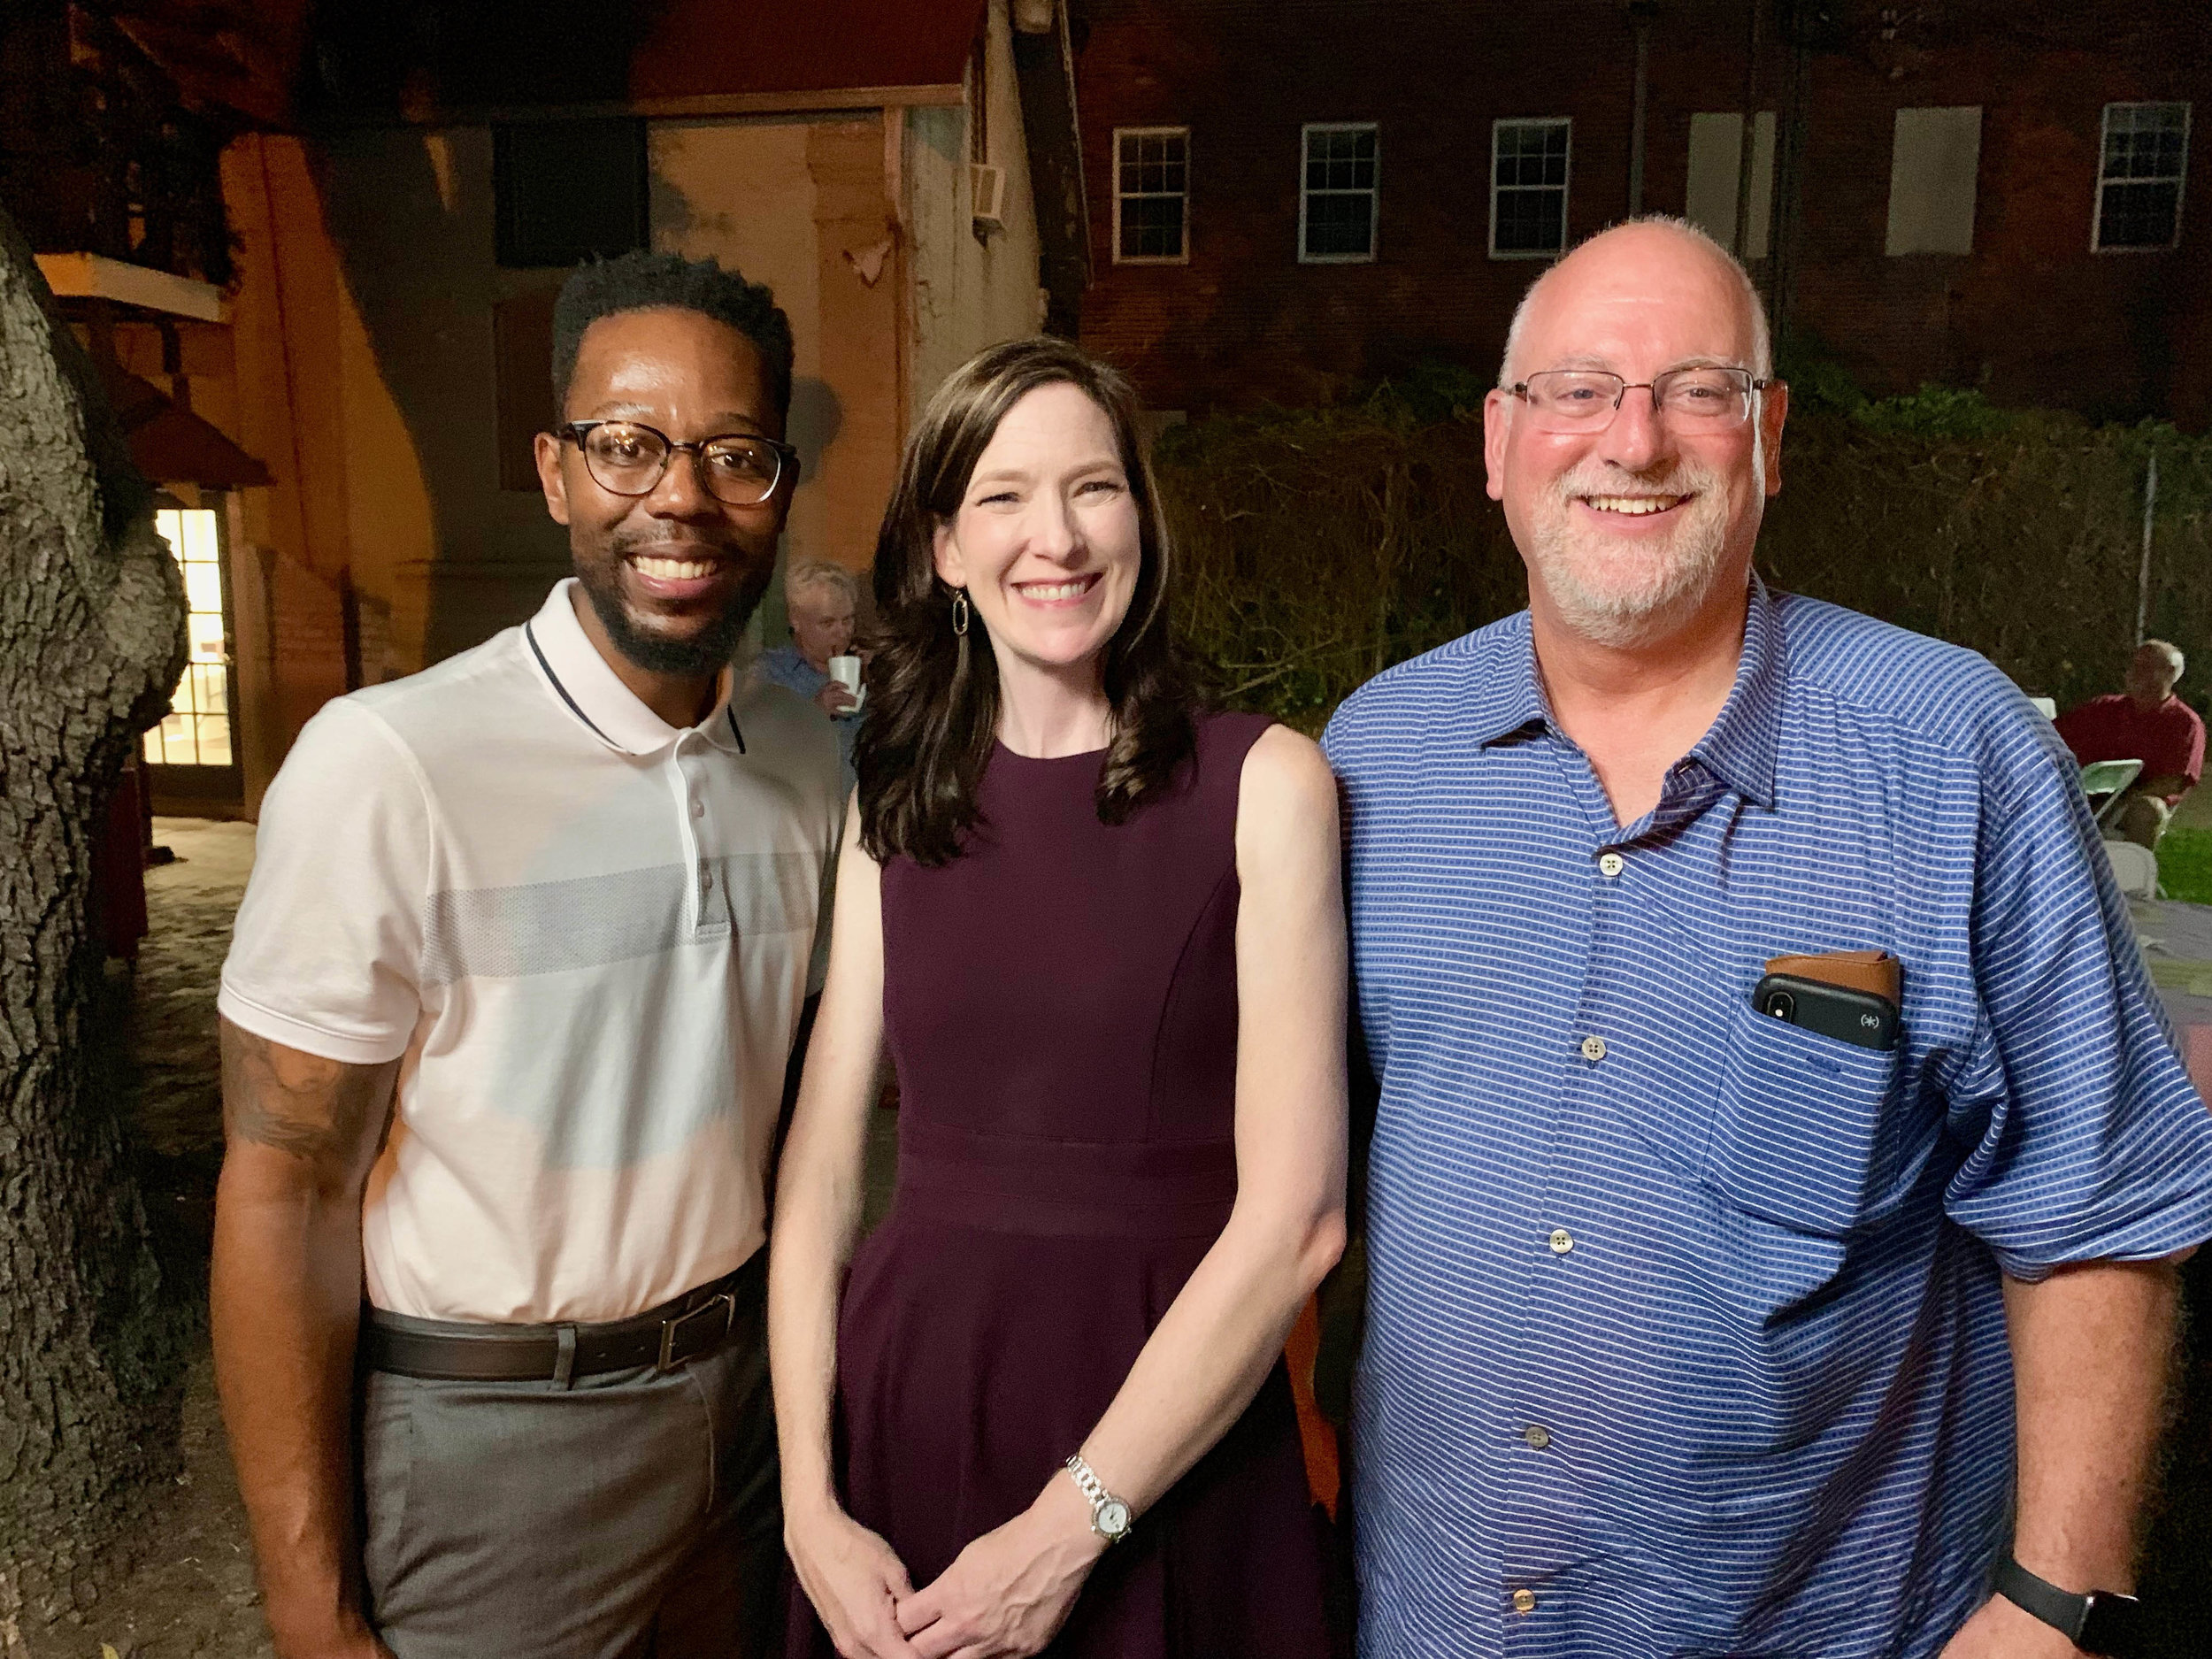 Dustin Hughes, Jennifer Lacefield and Ron Mills